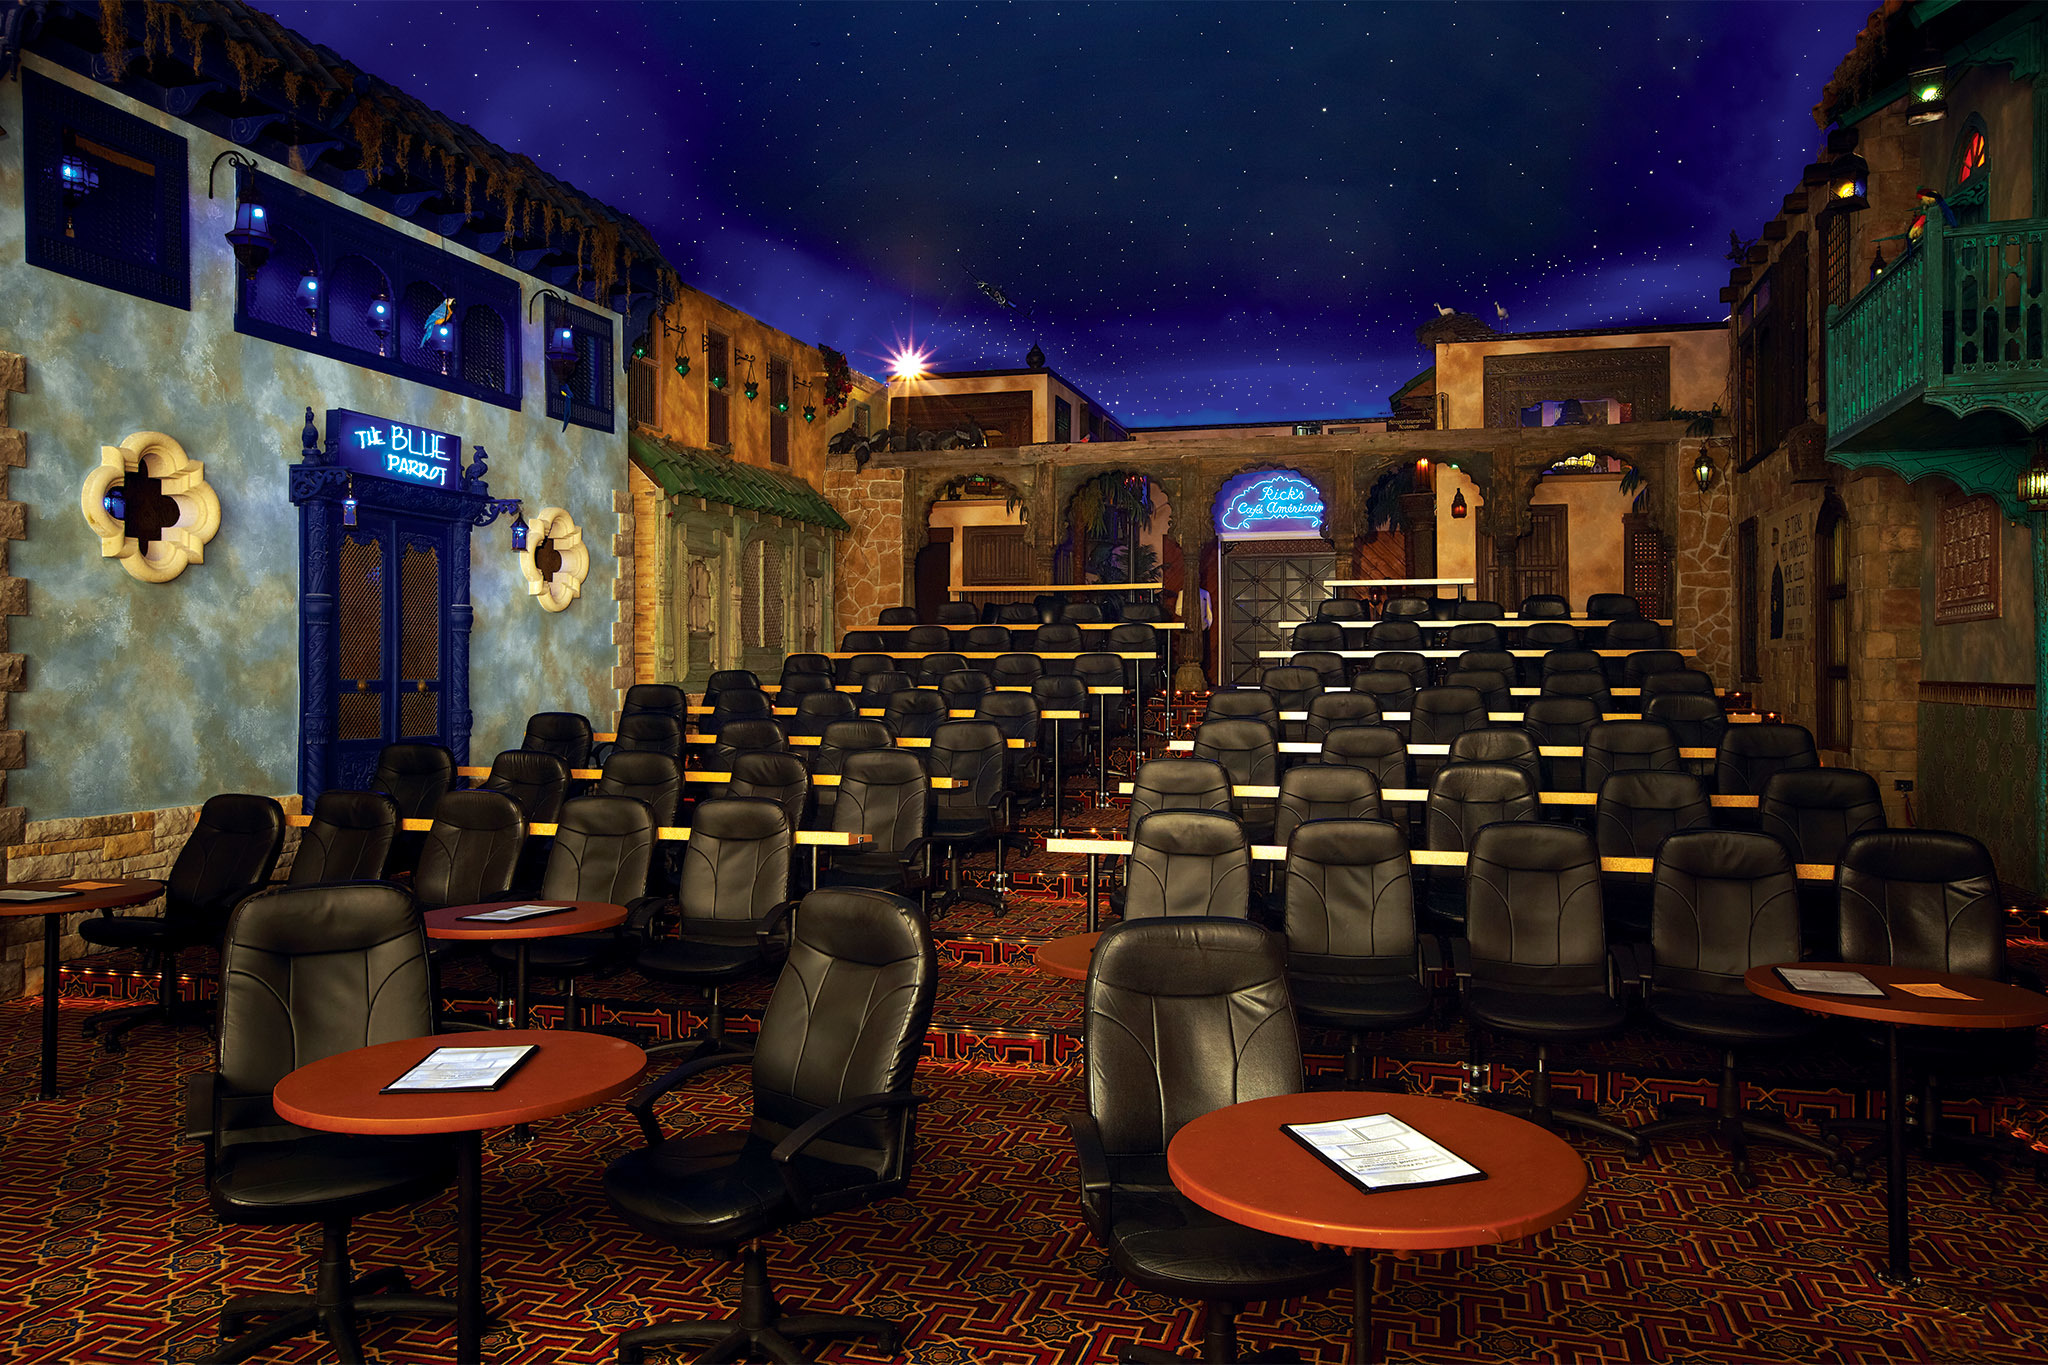 HollywoodBlvdCinema.venue.jpg